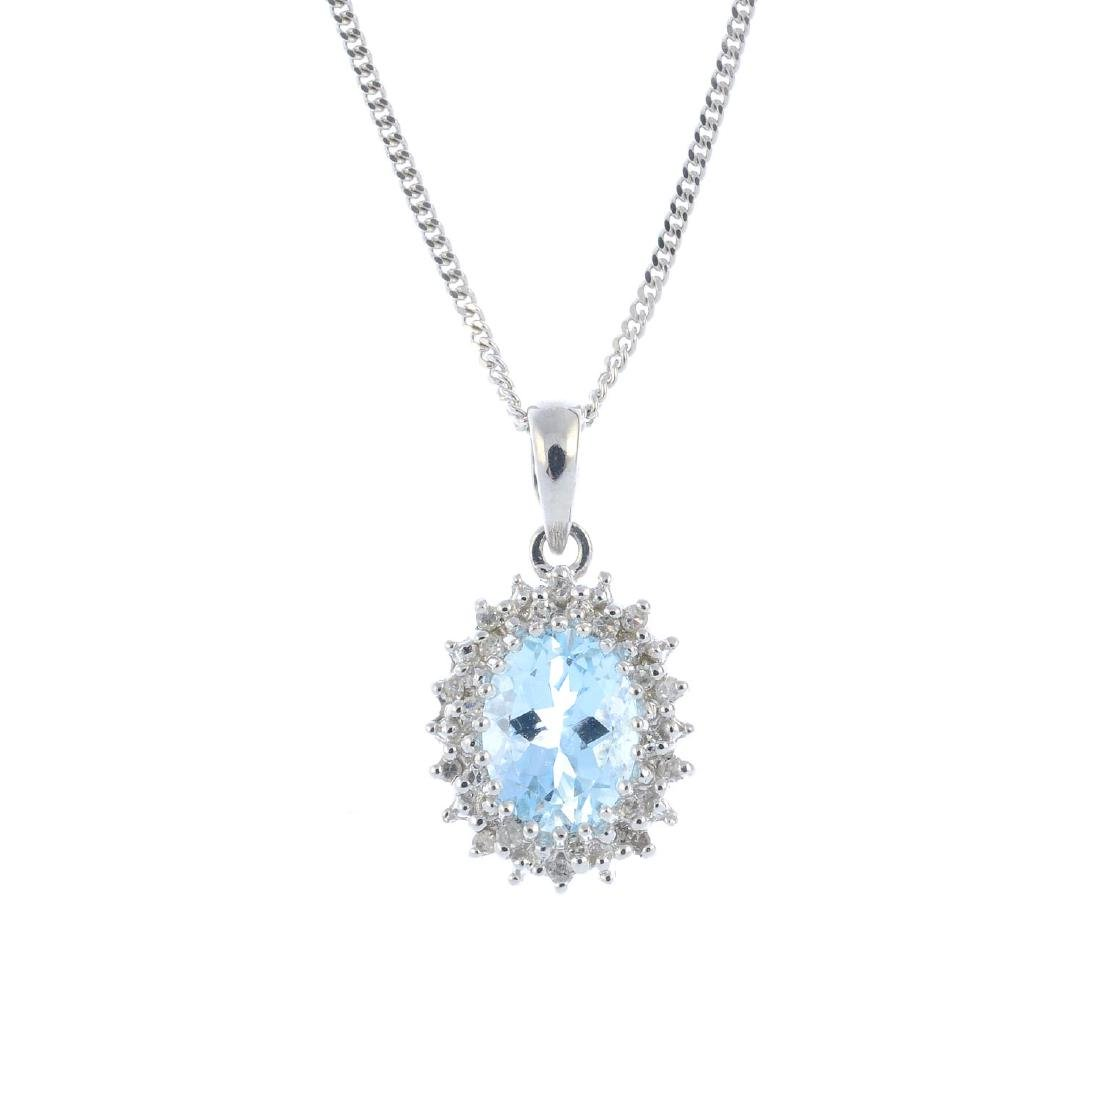 A 9ct gold aquamarine and diamond cluster pendant. The